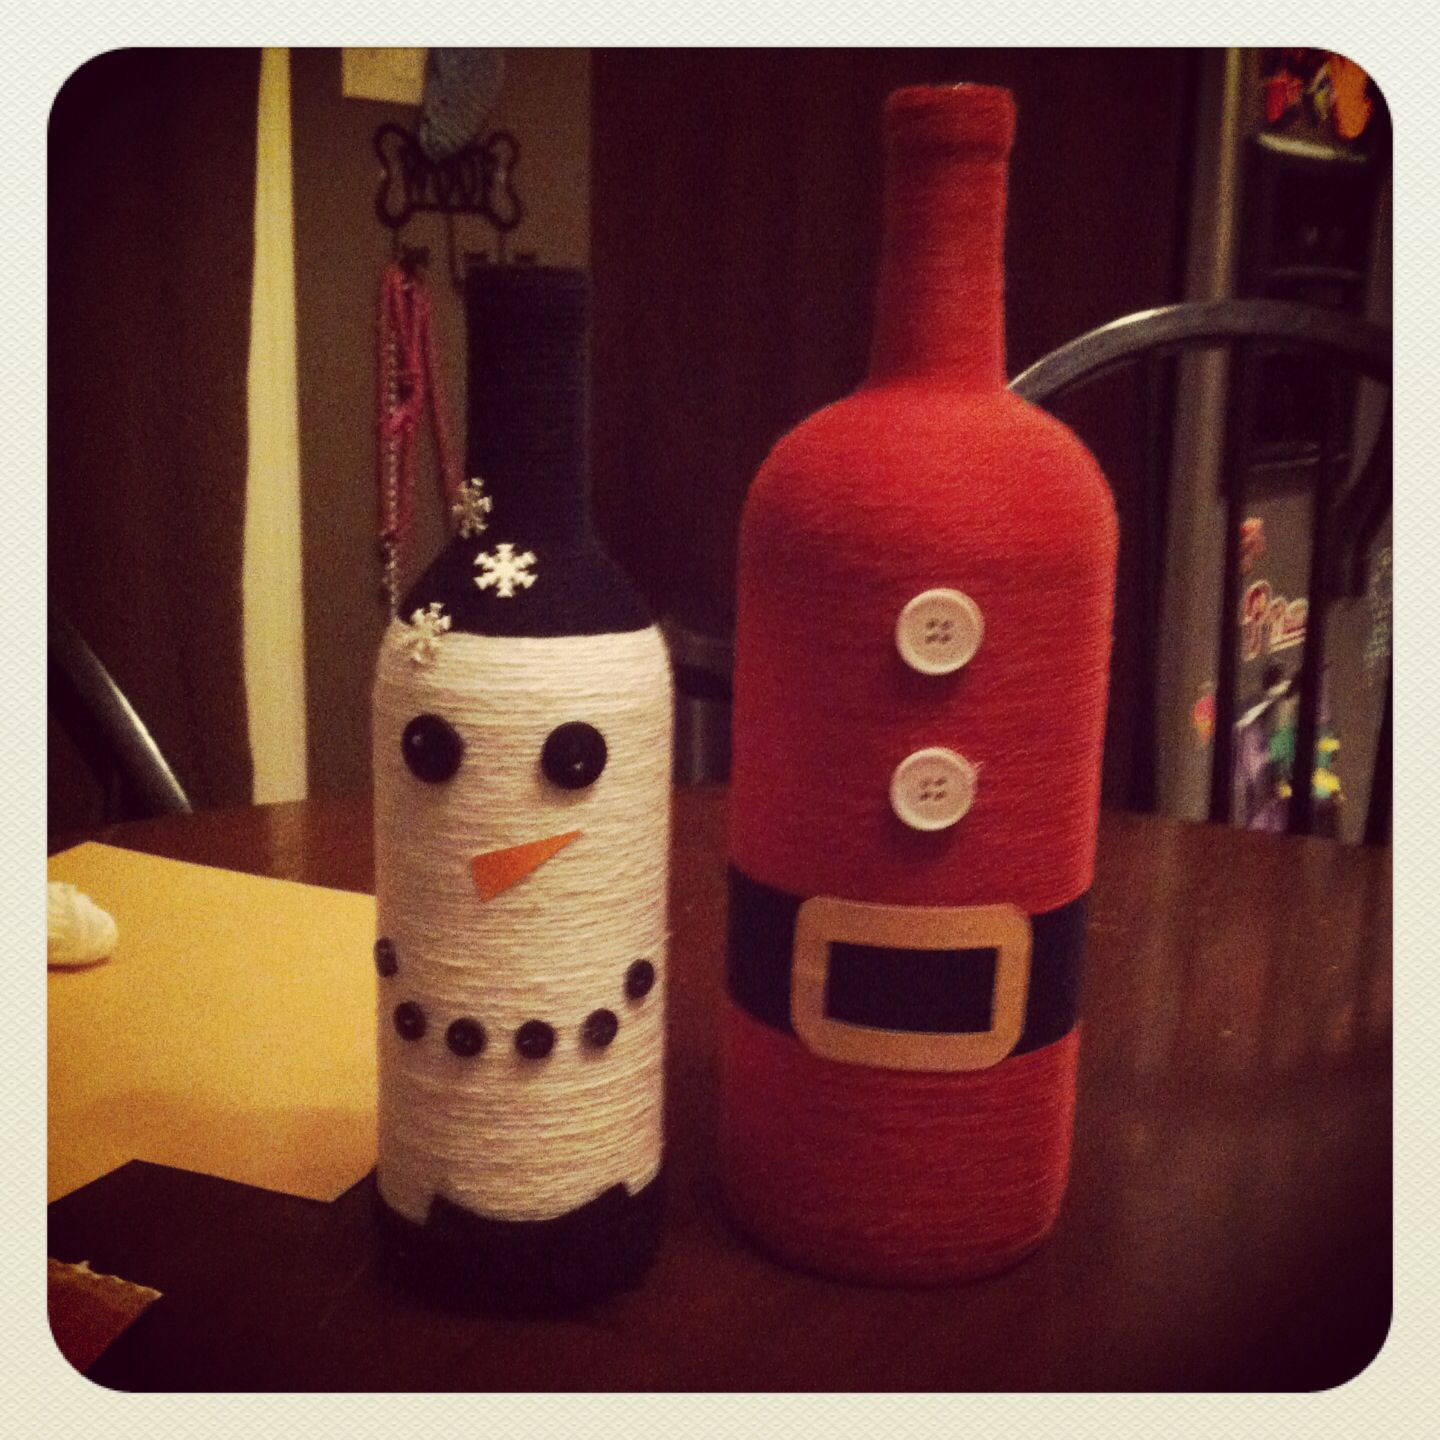 Handmade Christmas Wine Bottles Bottle Crafts Christmas Food Crafts Christmas Wine Bottles